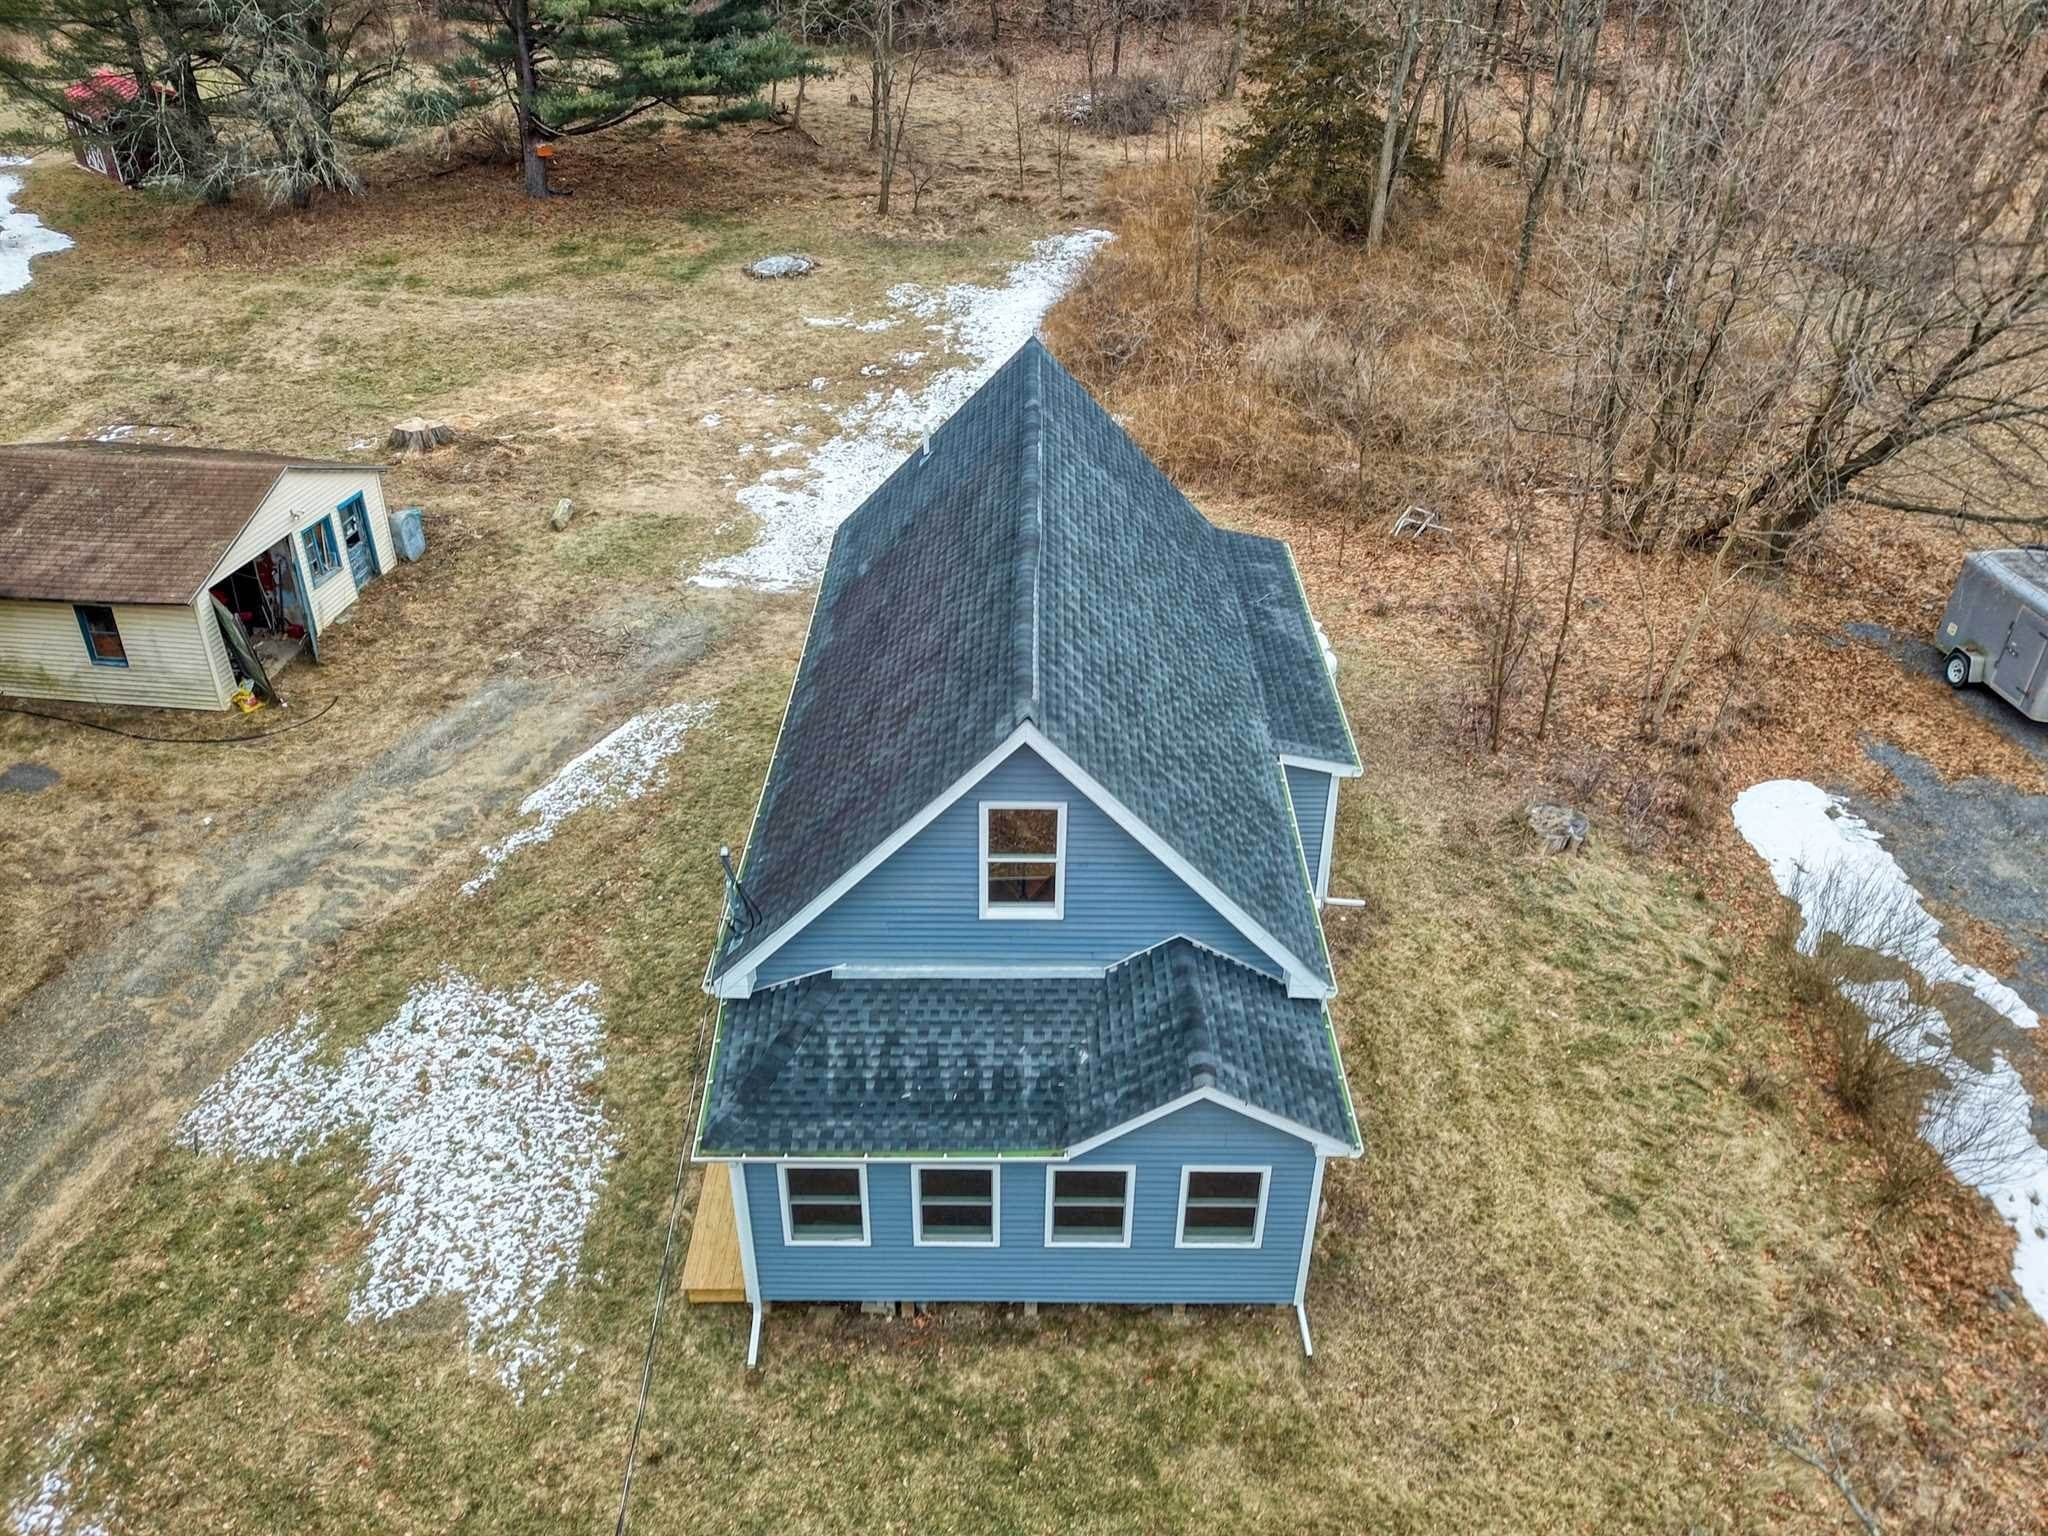 Single Family Homes for Sale at 1583 COUNTY ROUTE 19 Livingston, New York 12523 United States